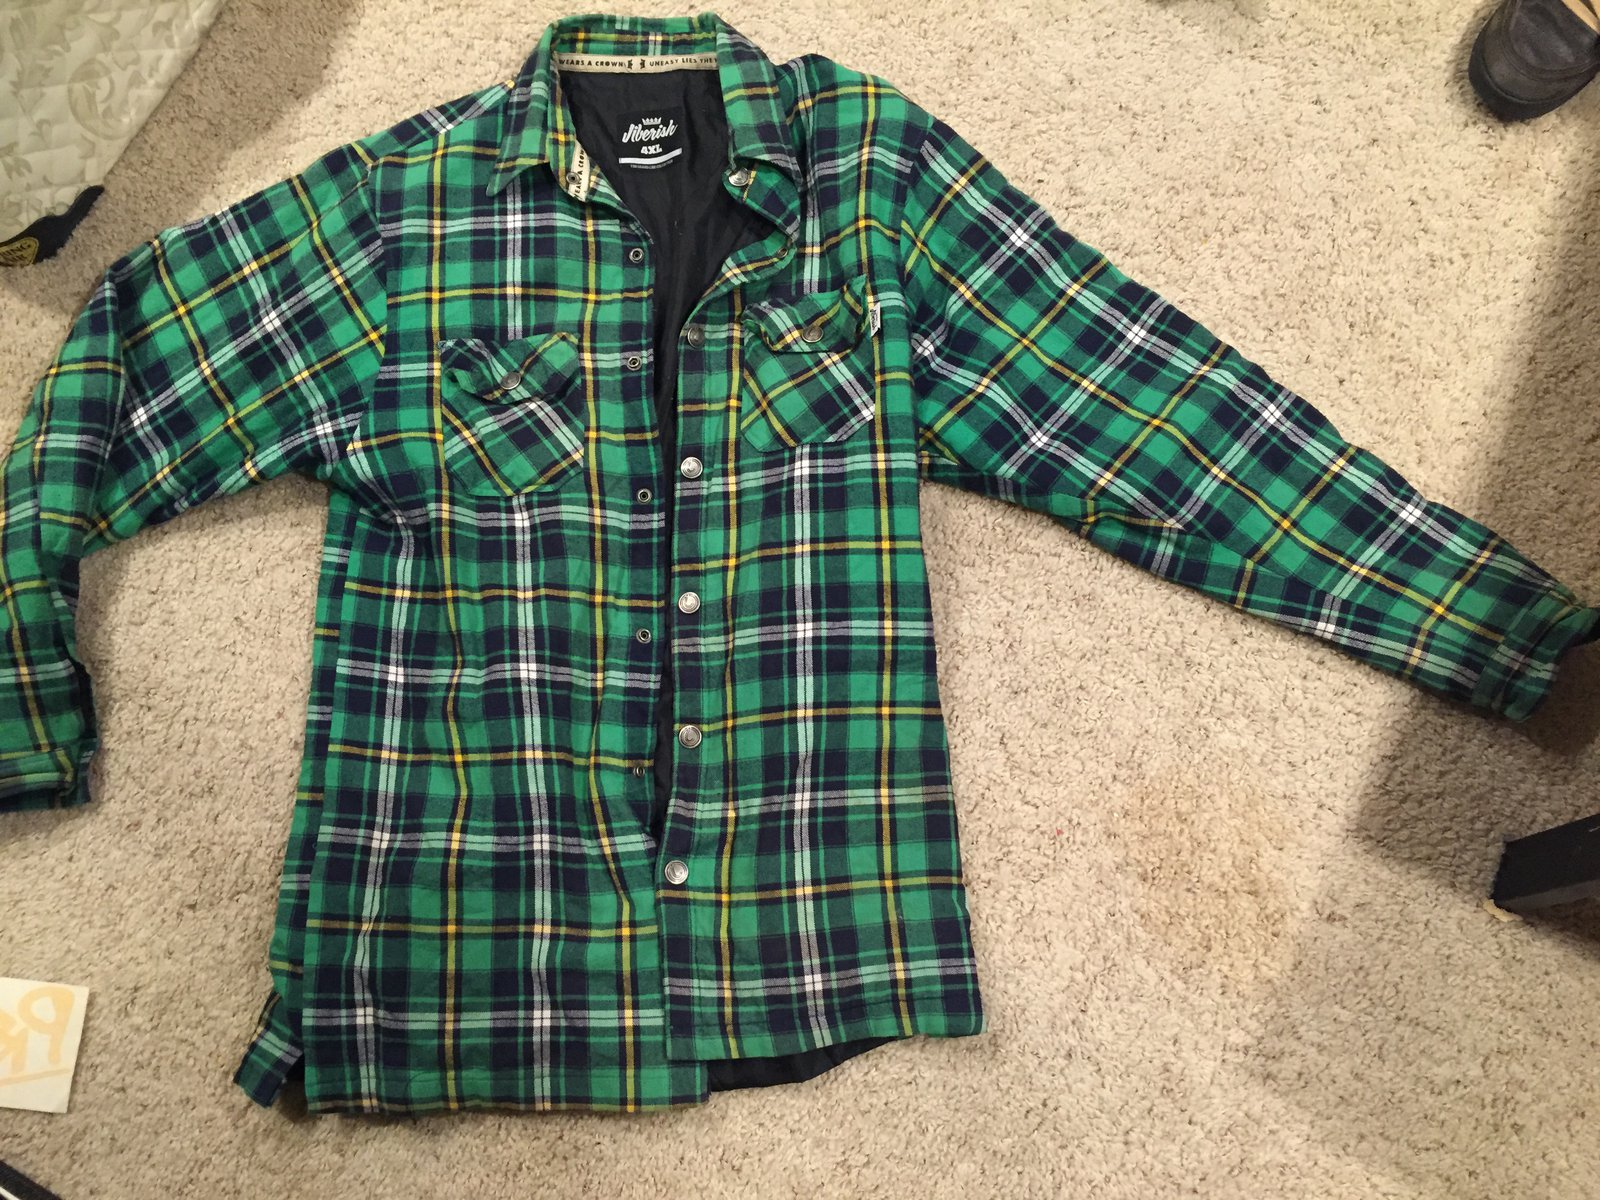 Jiberish 4XL Flannel